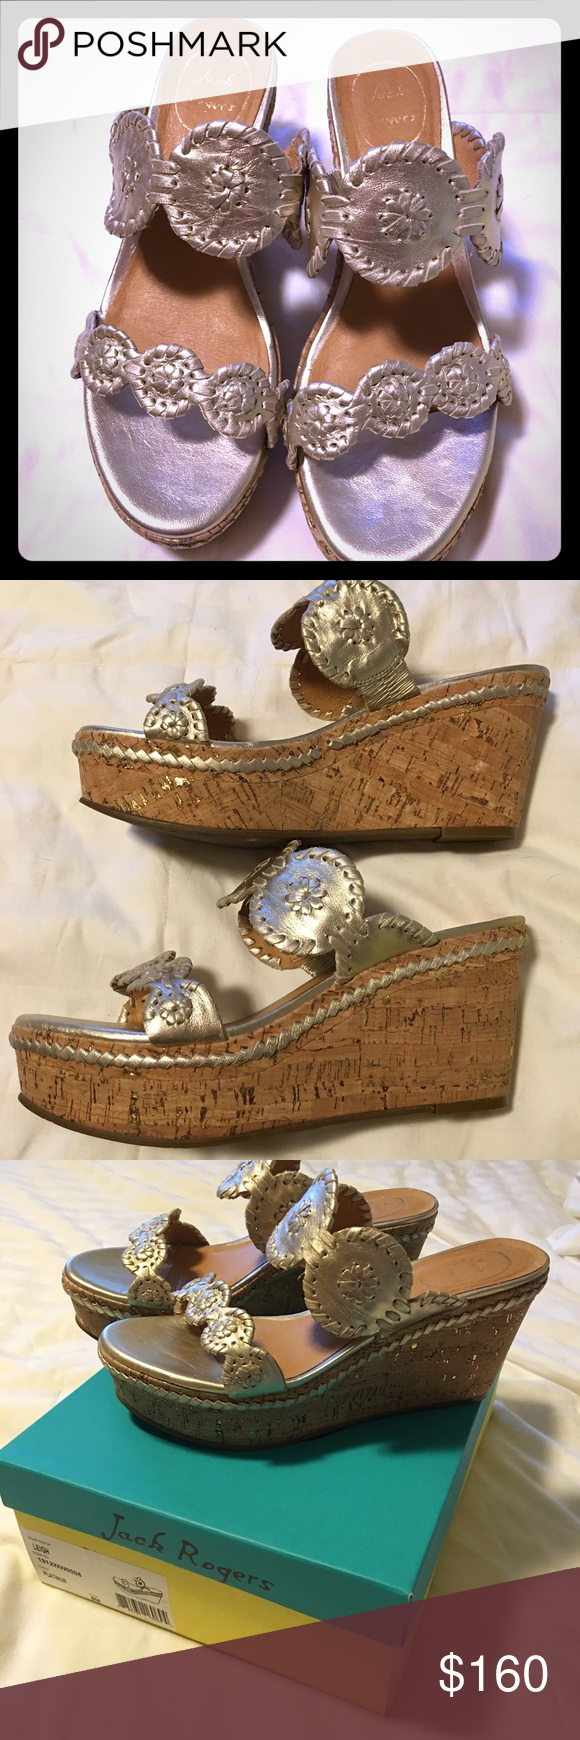 Jack Rogers Leigh Wedge Size 8 Platinum Worn them once for 3 hours!  My foot is just way too narrow to keep them on my feet! Jack Rogers Shoes Wedges